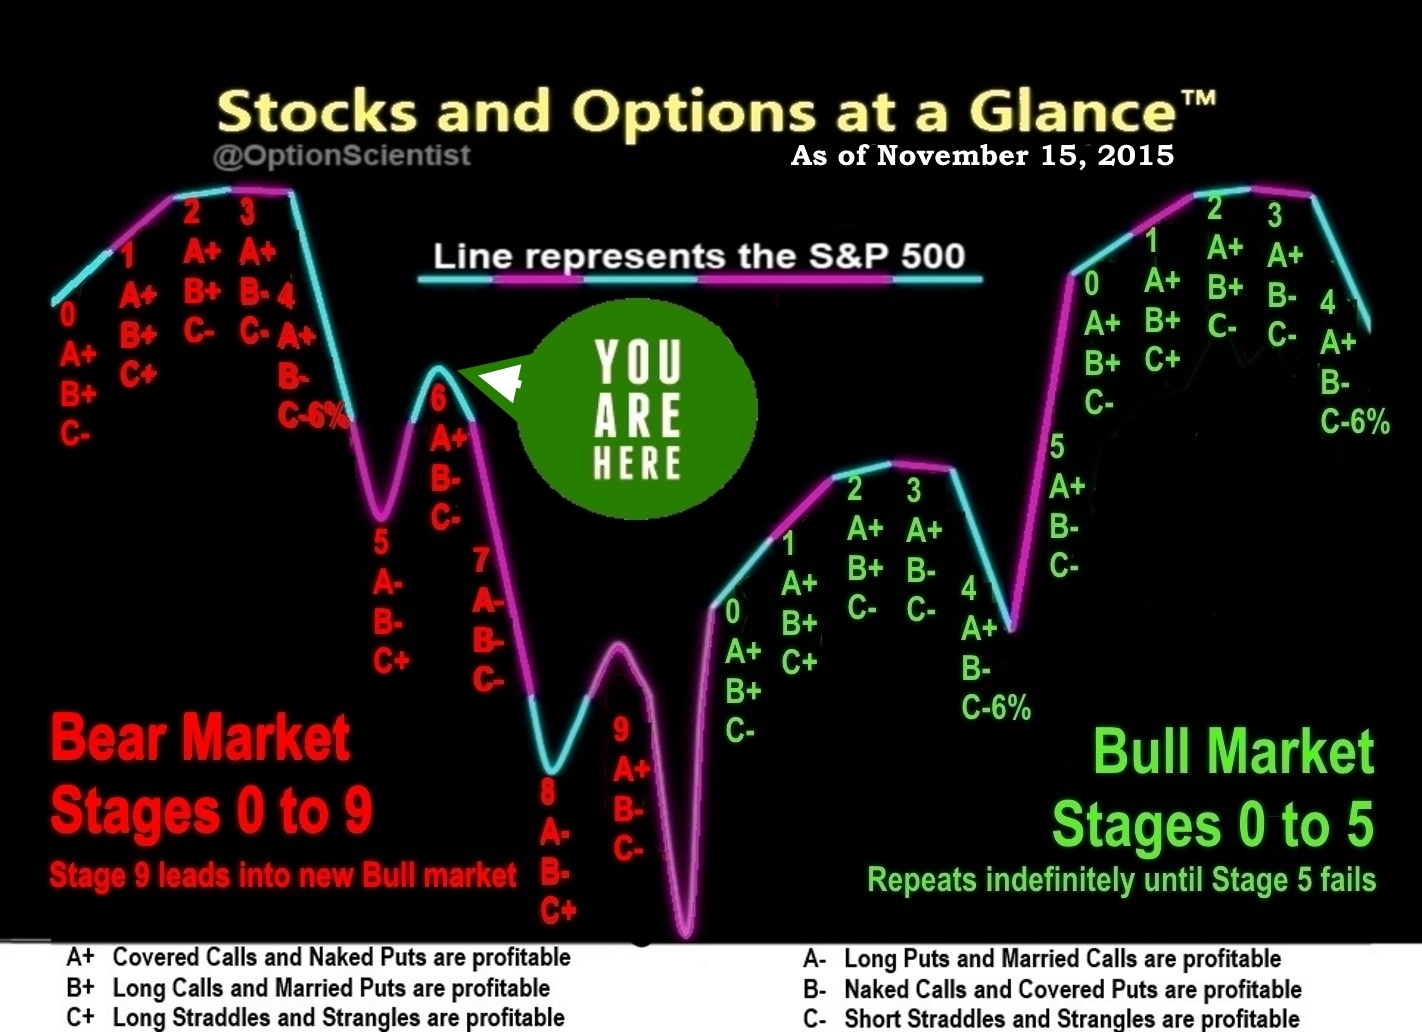 Stocks and Options at a Glance 11-15-15